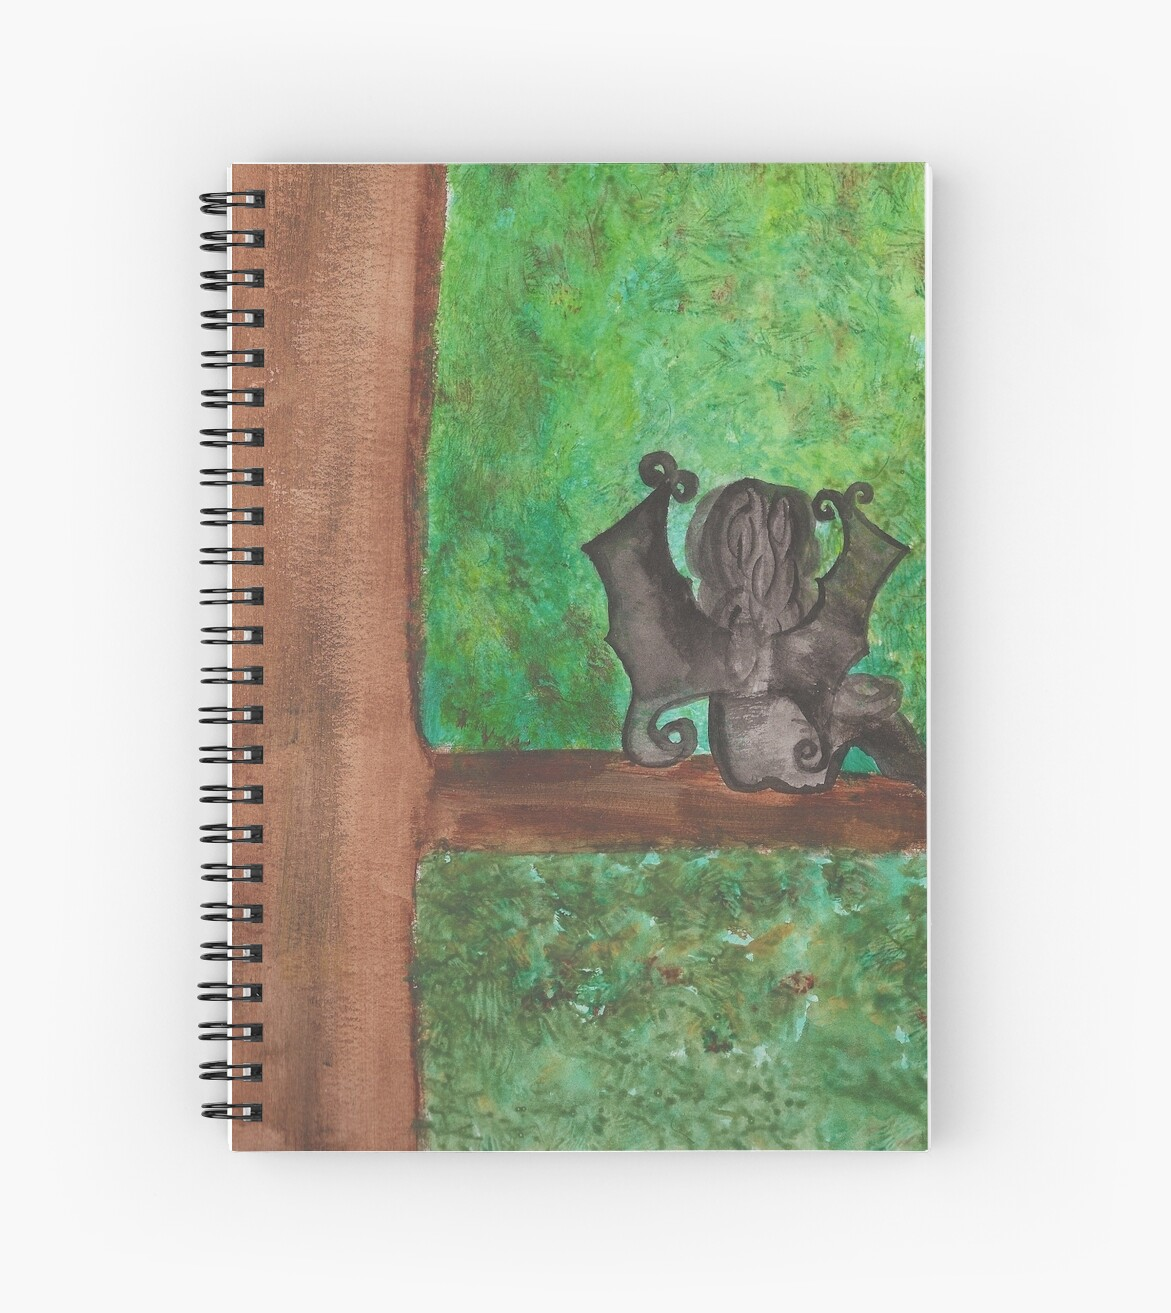 A Bat By Day by VictoriaGarden